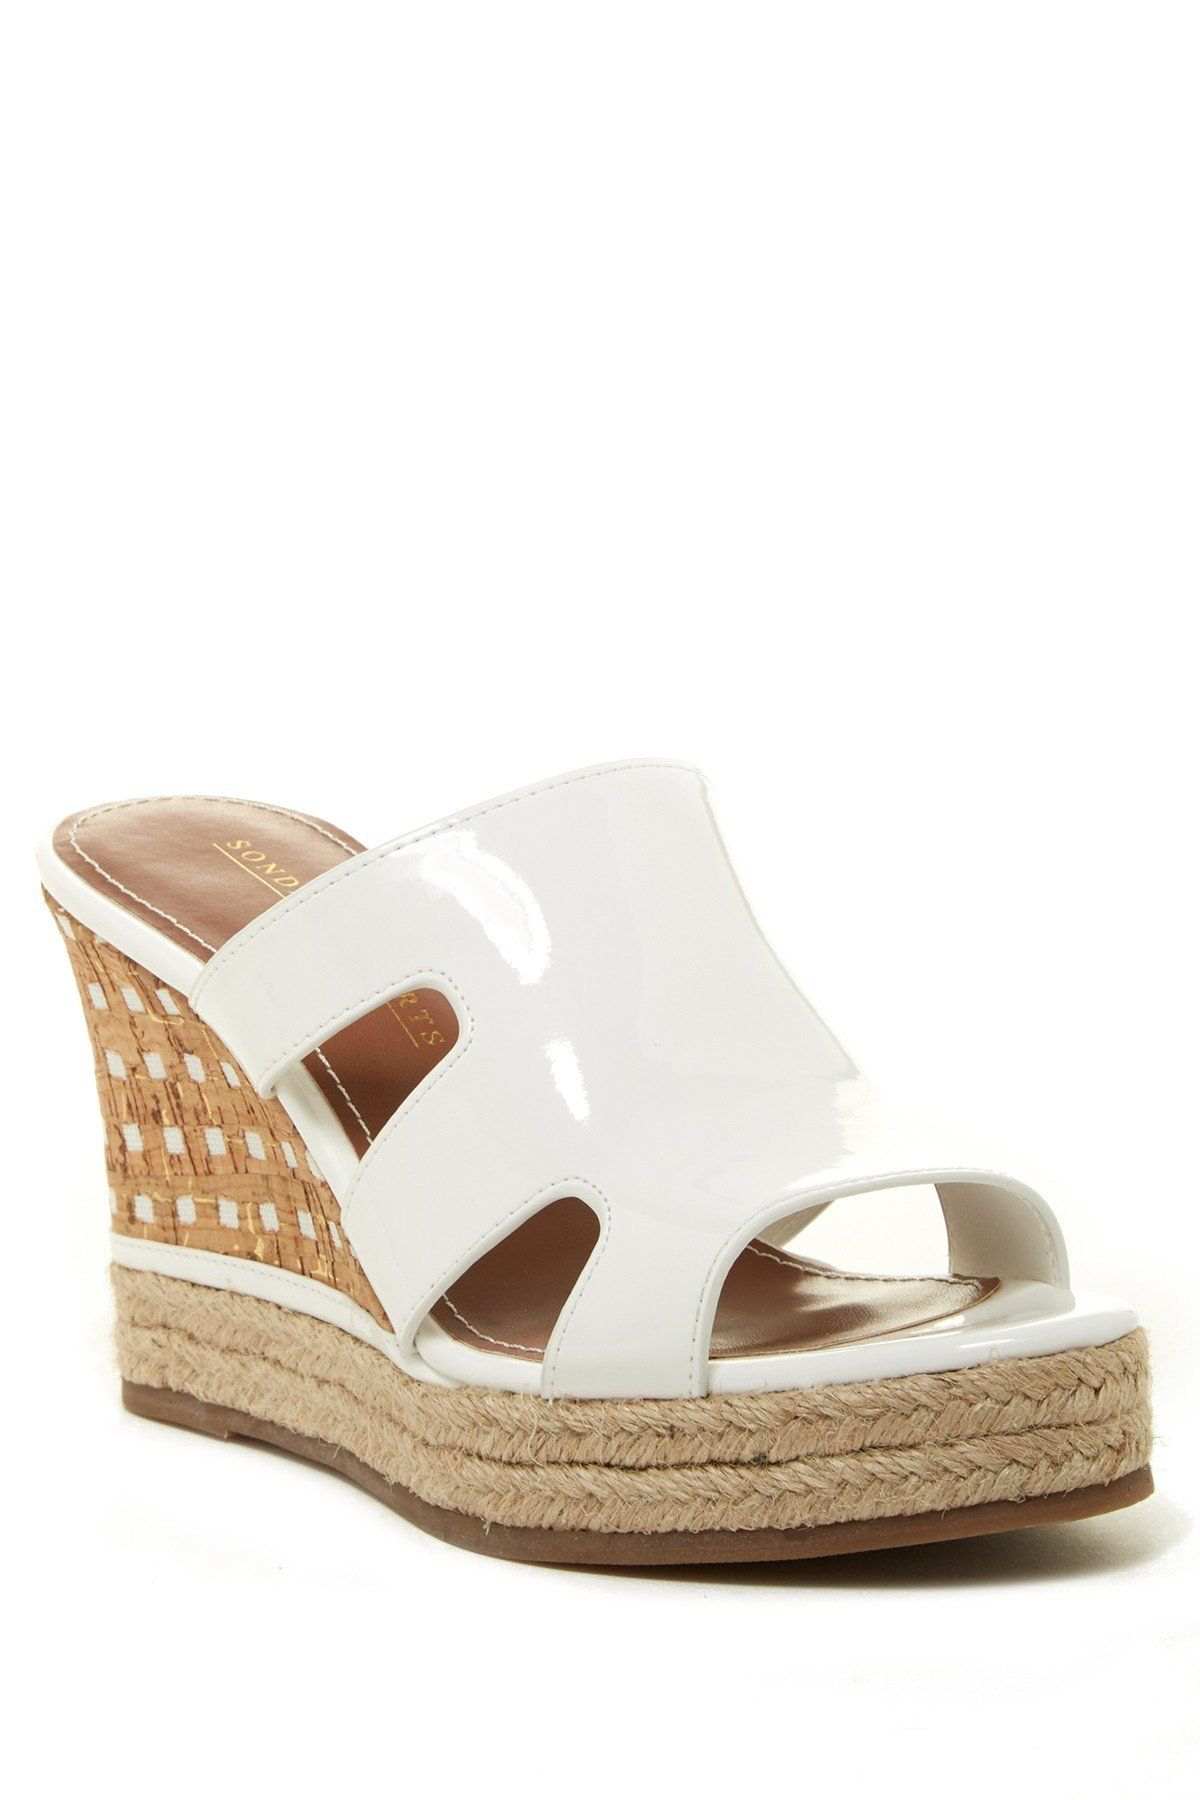 1b13ad53f11 Angie Wedge Sandal | muzaffer sindel | Wedge sandals, Wedges, Shoes